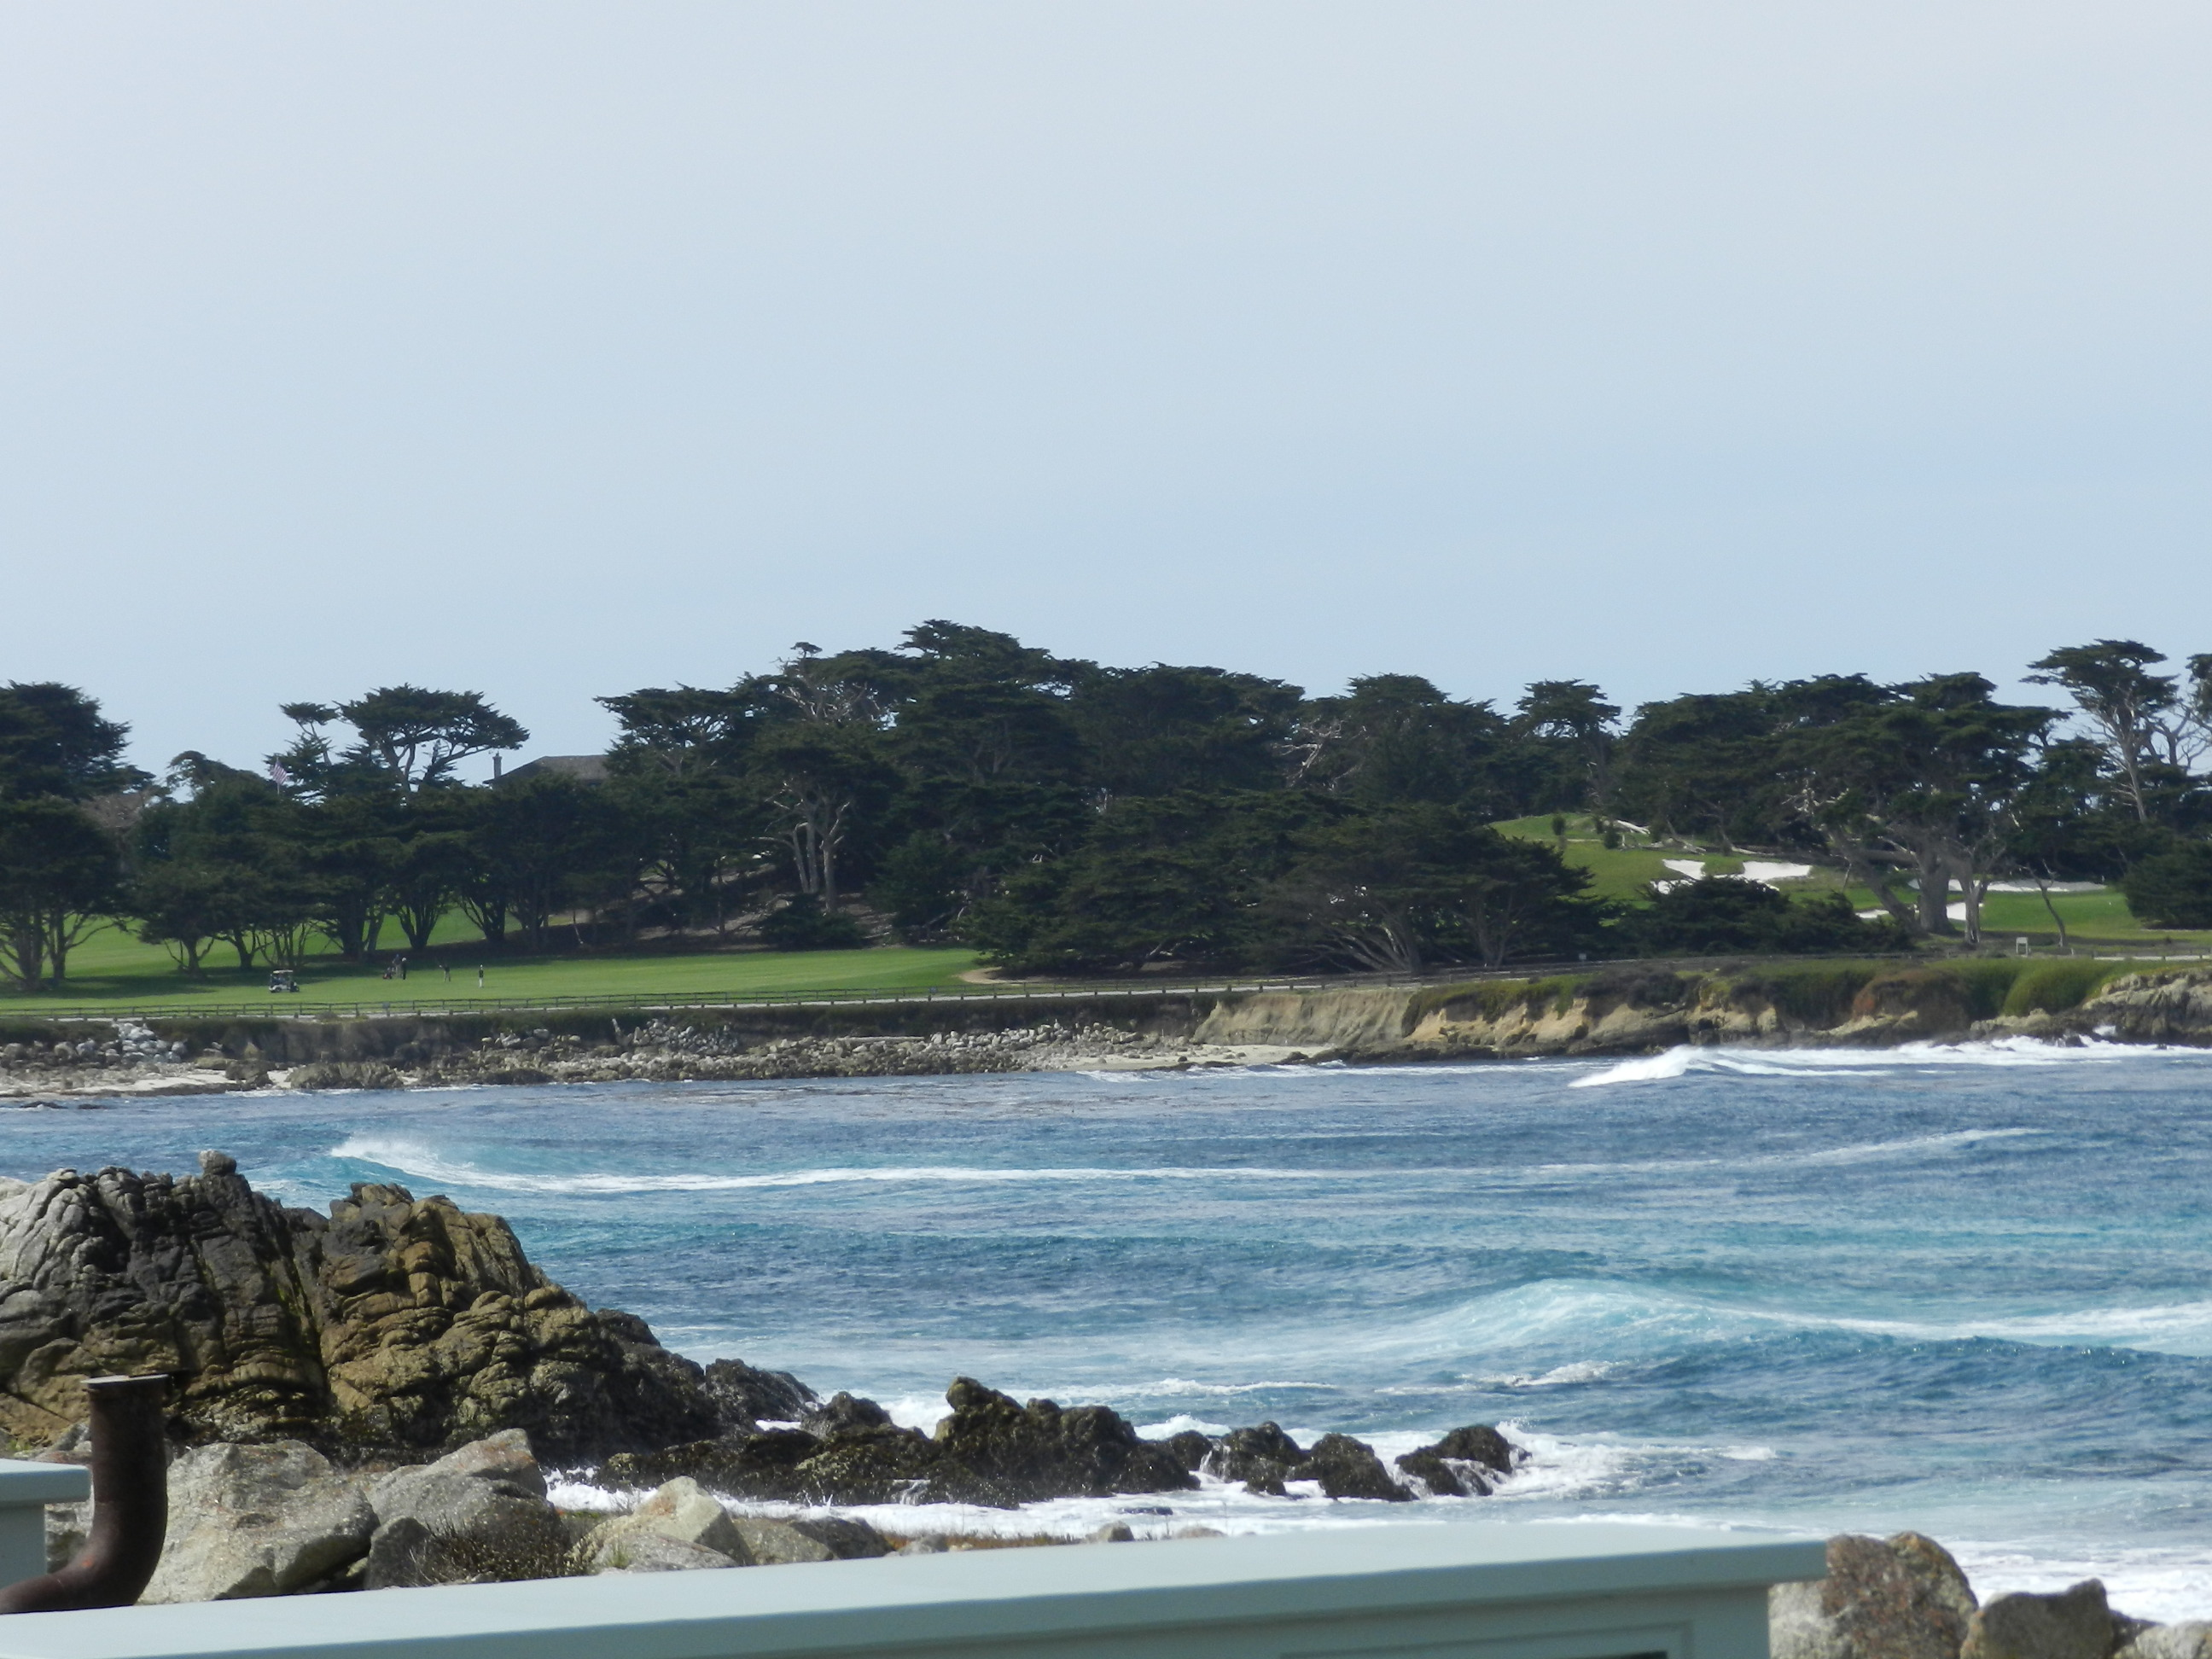 17 mile drive carmel monterey - highway 1 california dicas